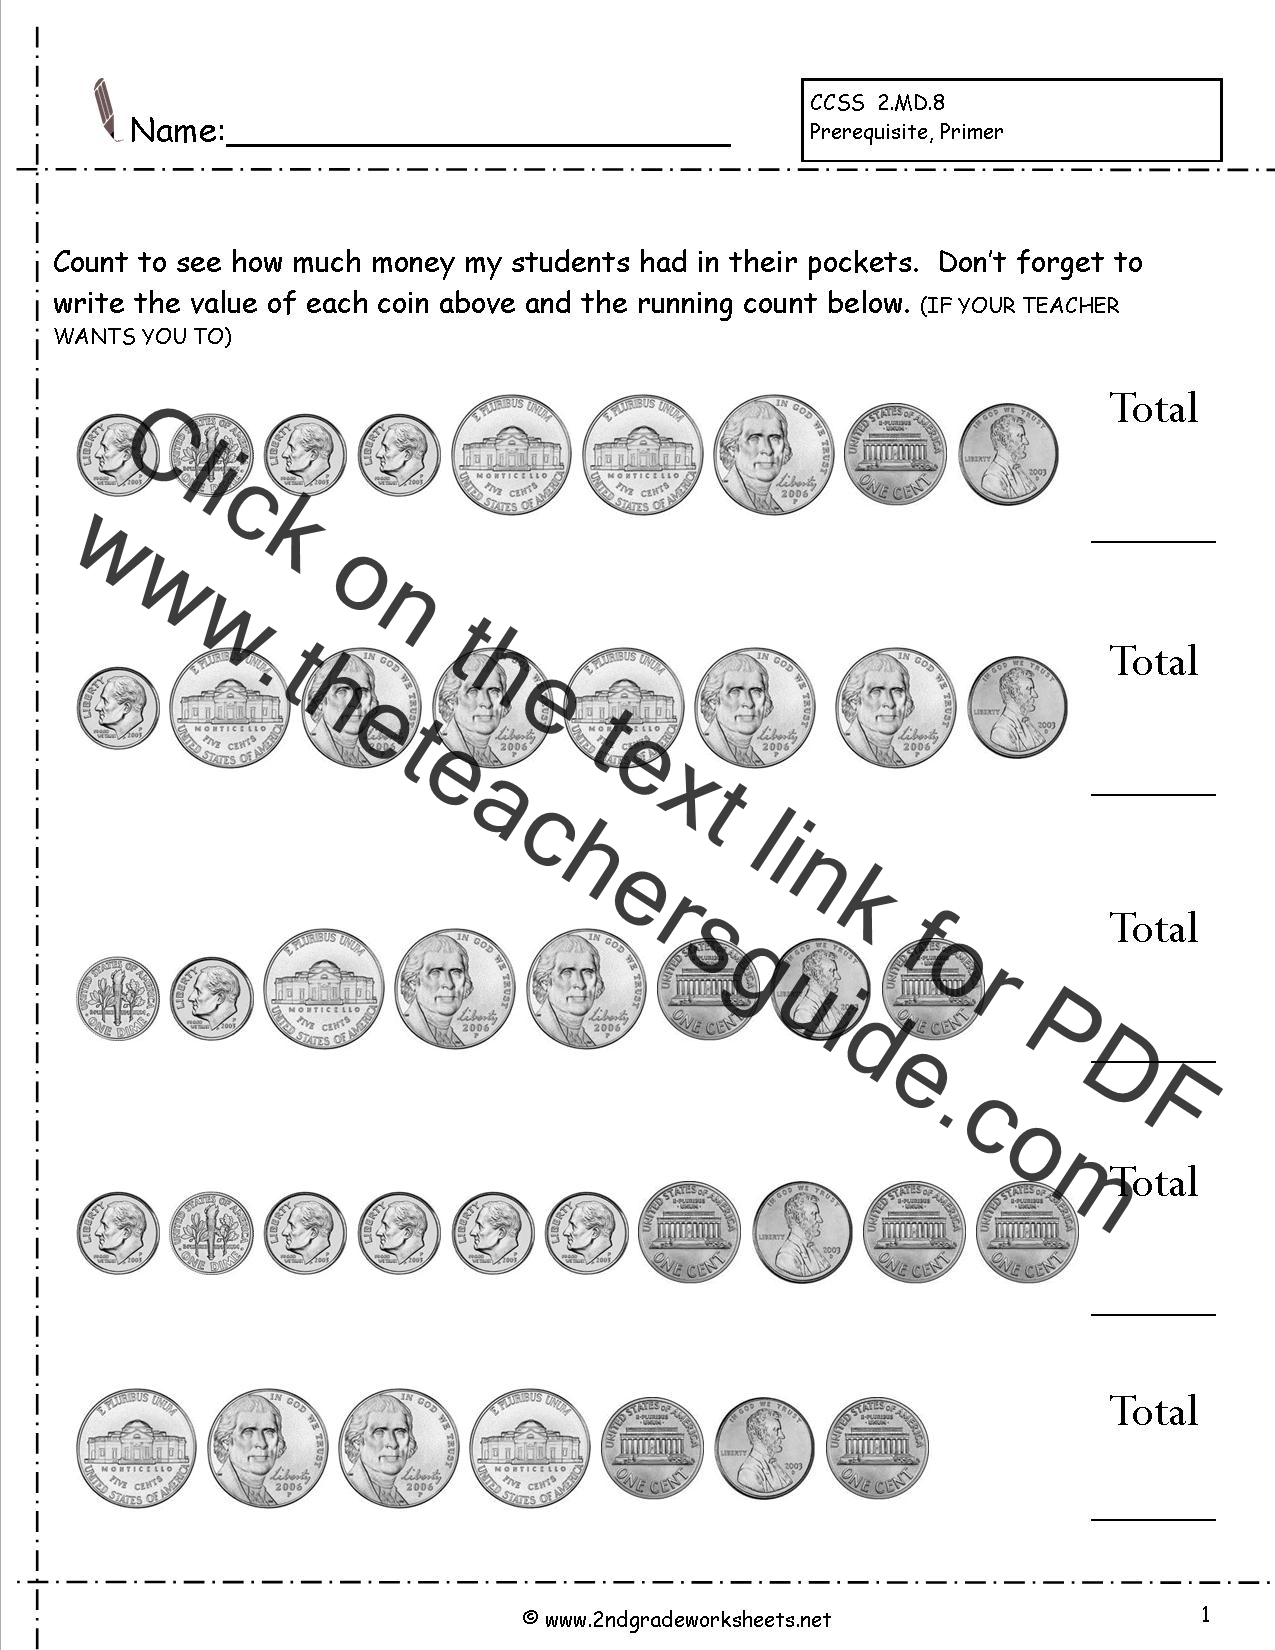 Worksheets Adding Money Worksheets counting coins and money worksheets printouts worksheet